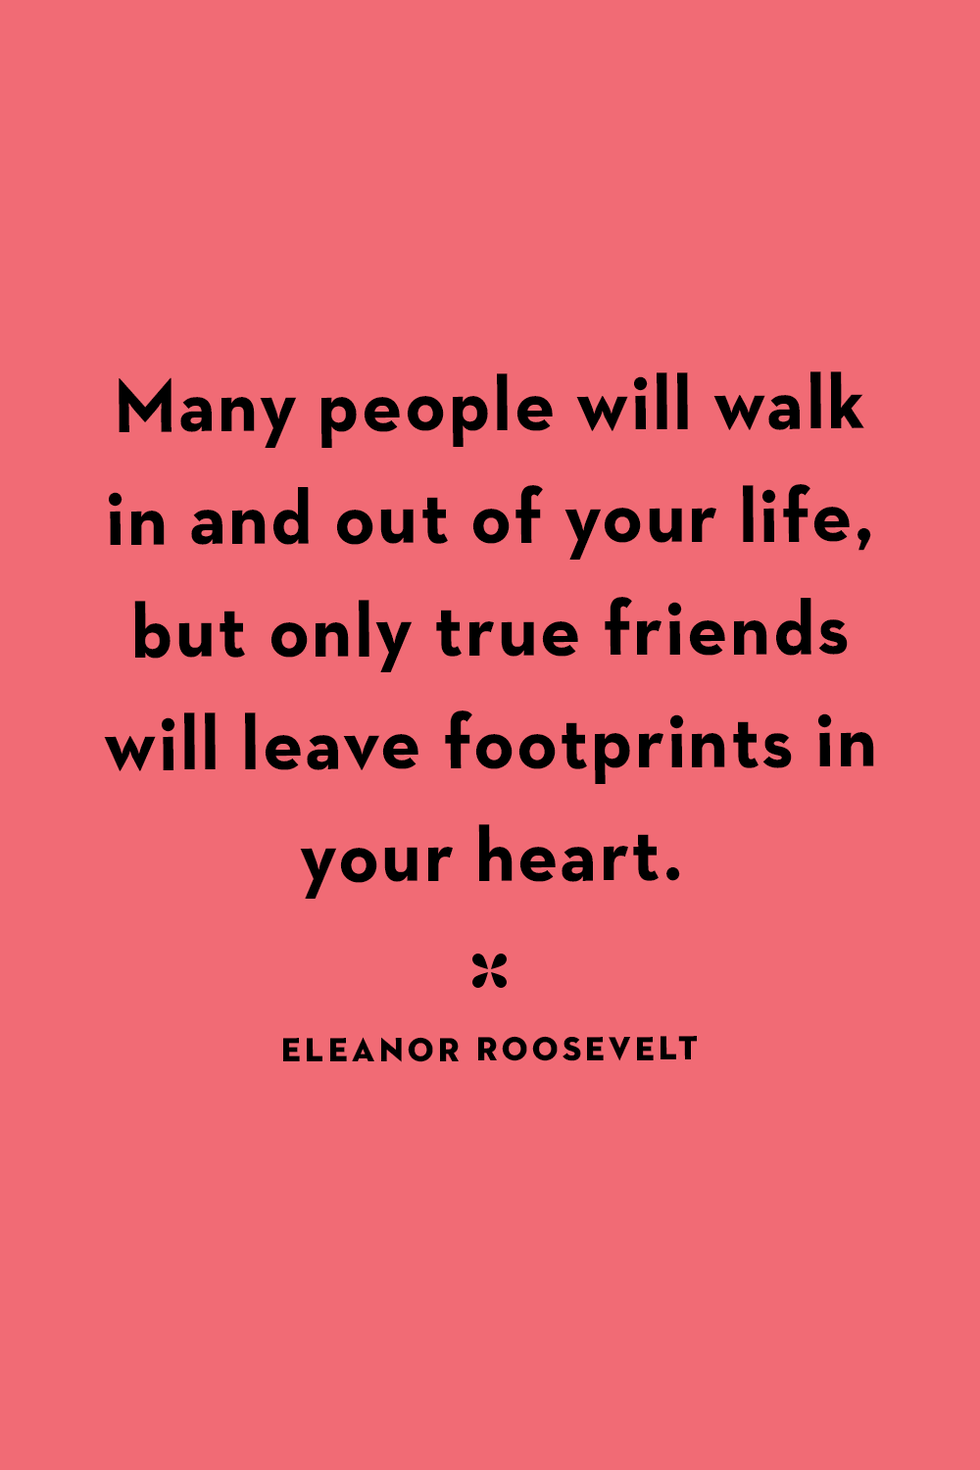 friendship-day-quotes-2